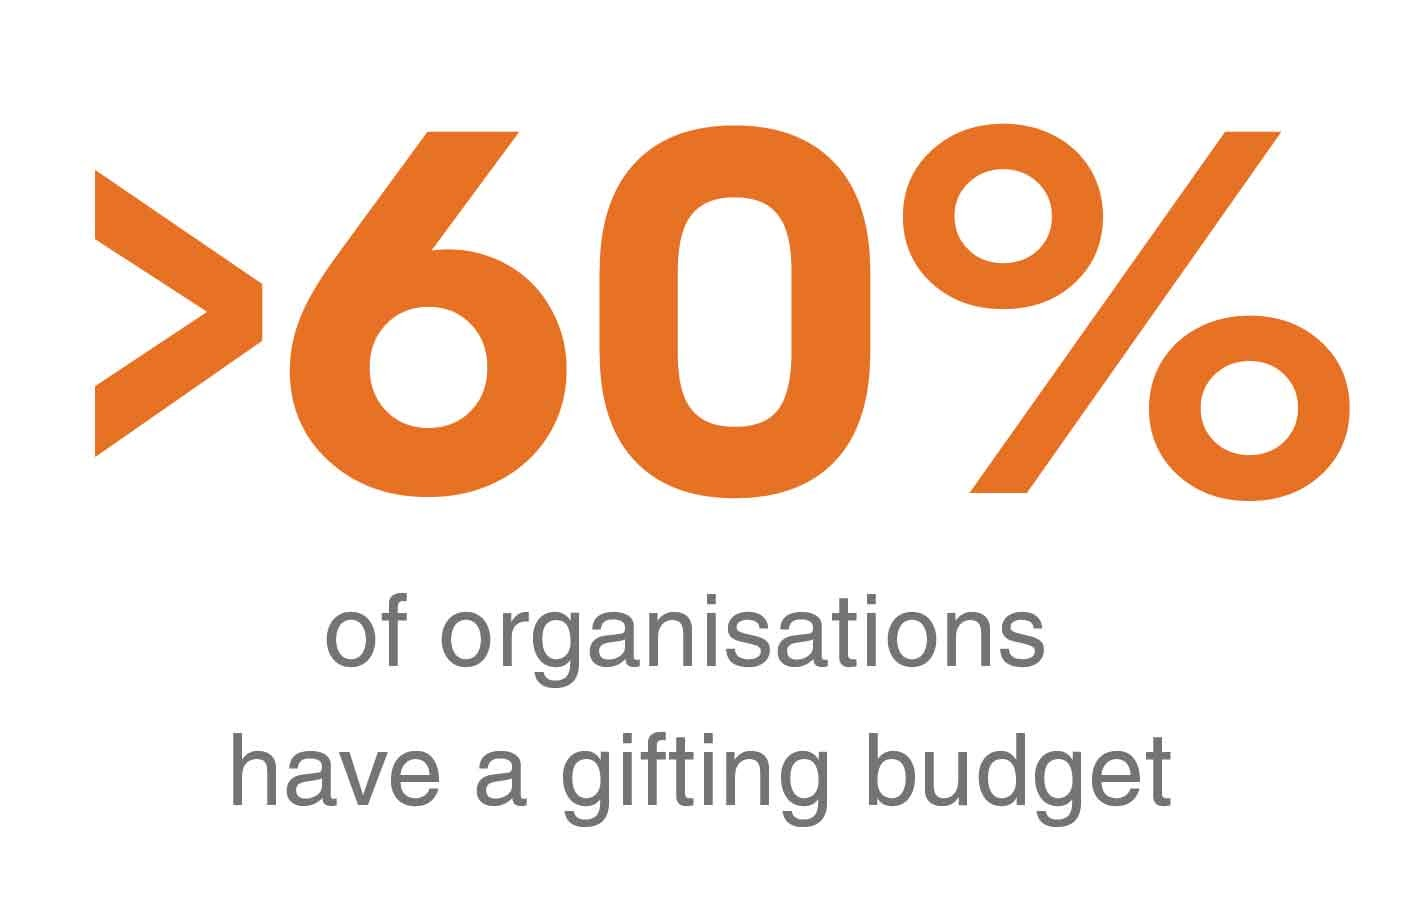 60% of organisations have a gifting budget